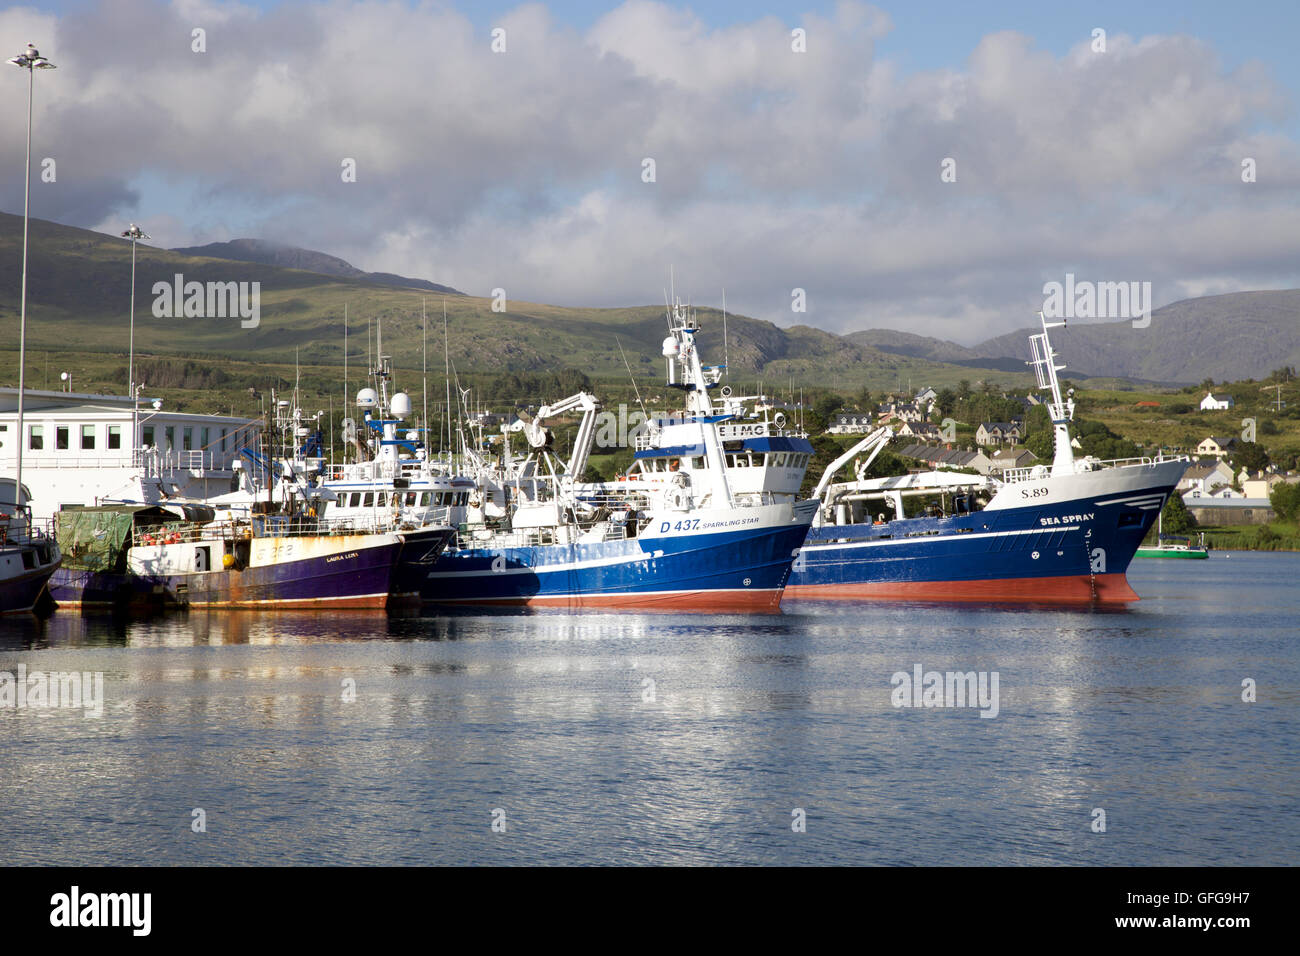 Ships anchored in Castletownbere Harbour, West Cork - Stock Image